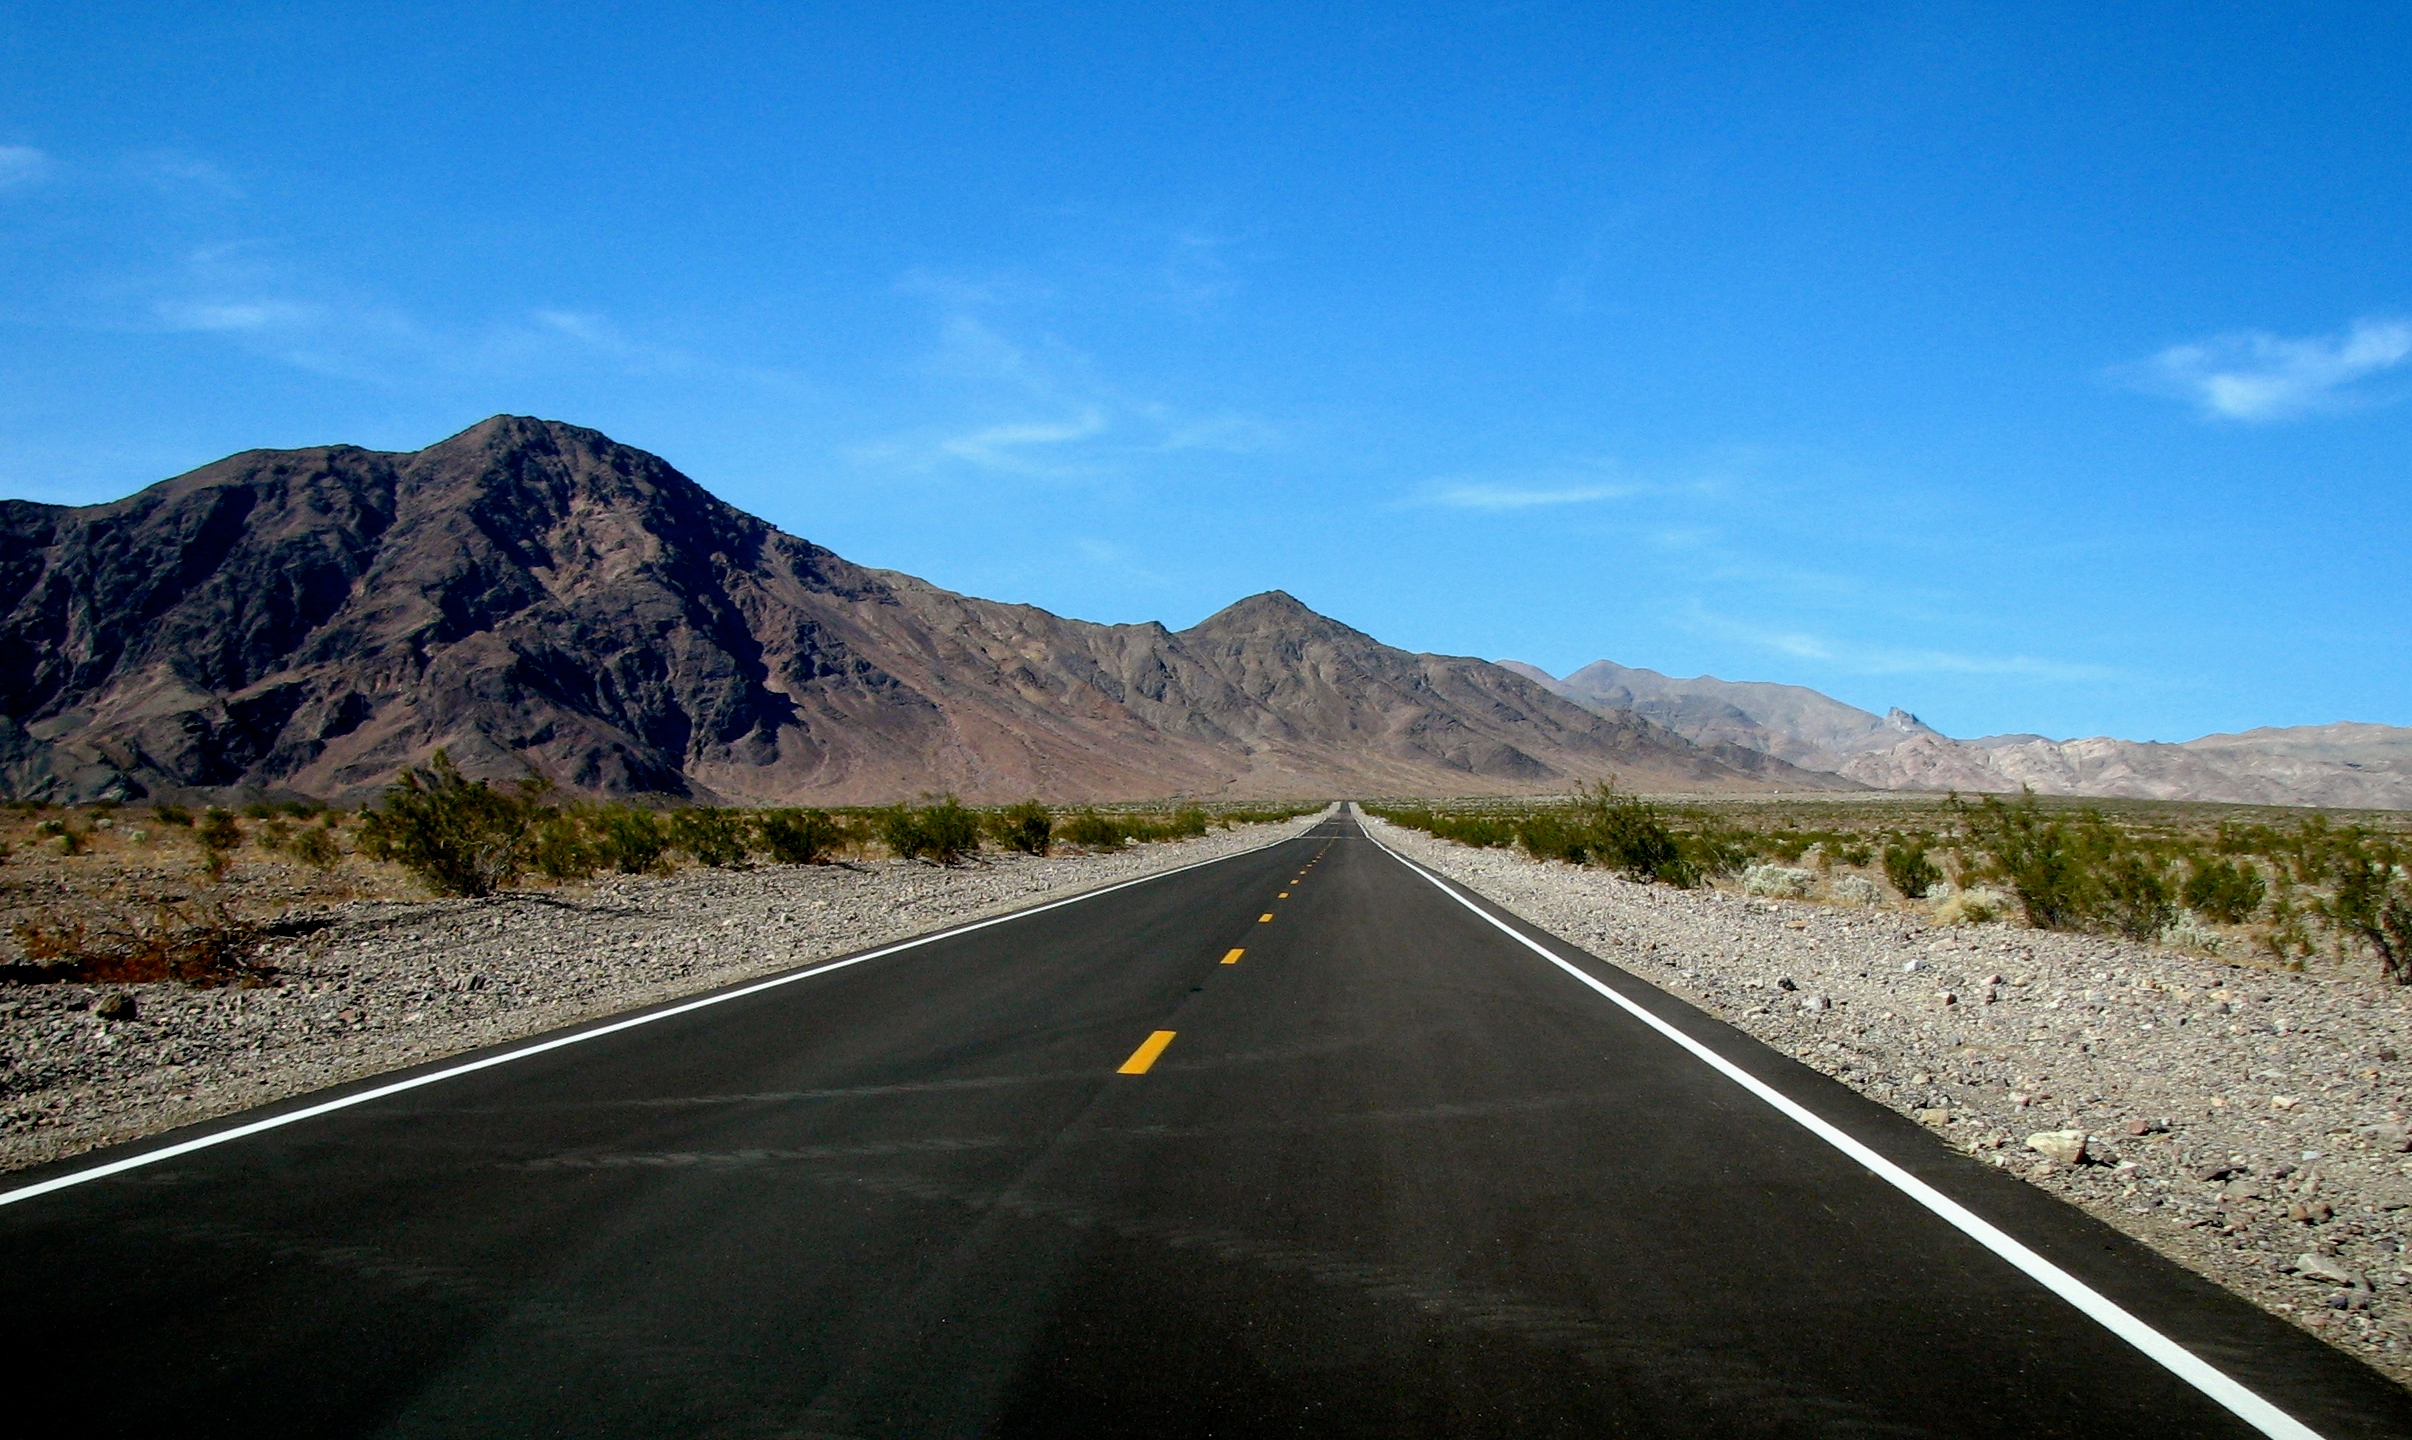 The best road trip destination in all 50 states